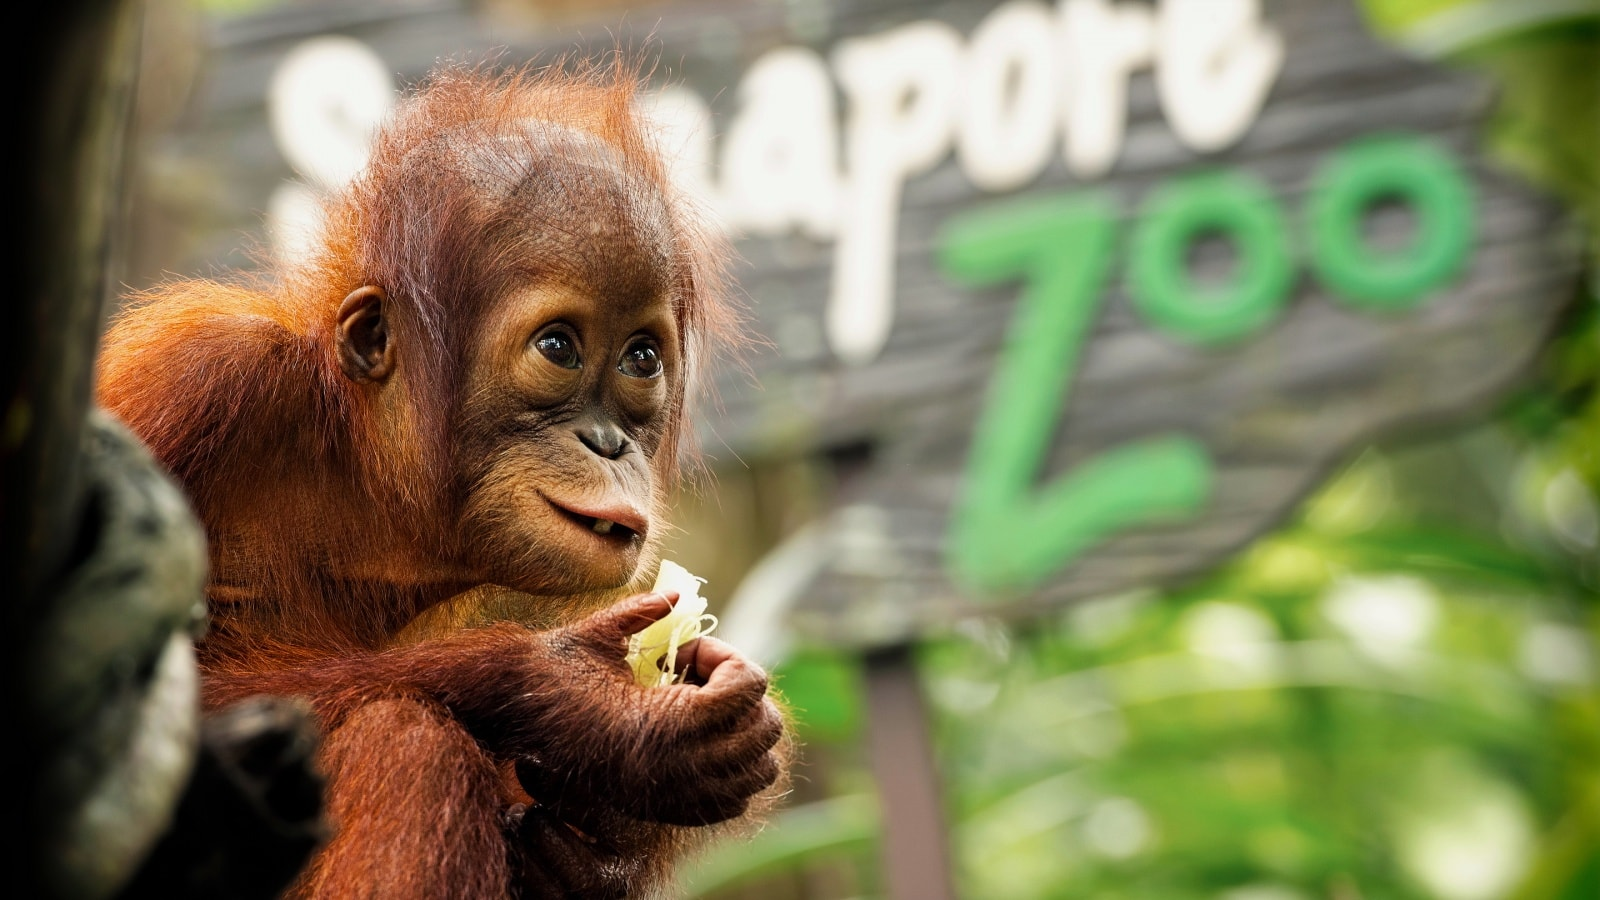 Orangutan widescreen wallpapers